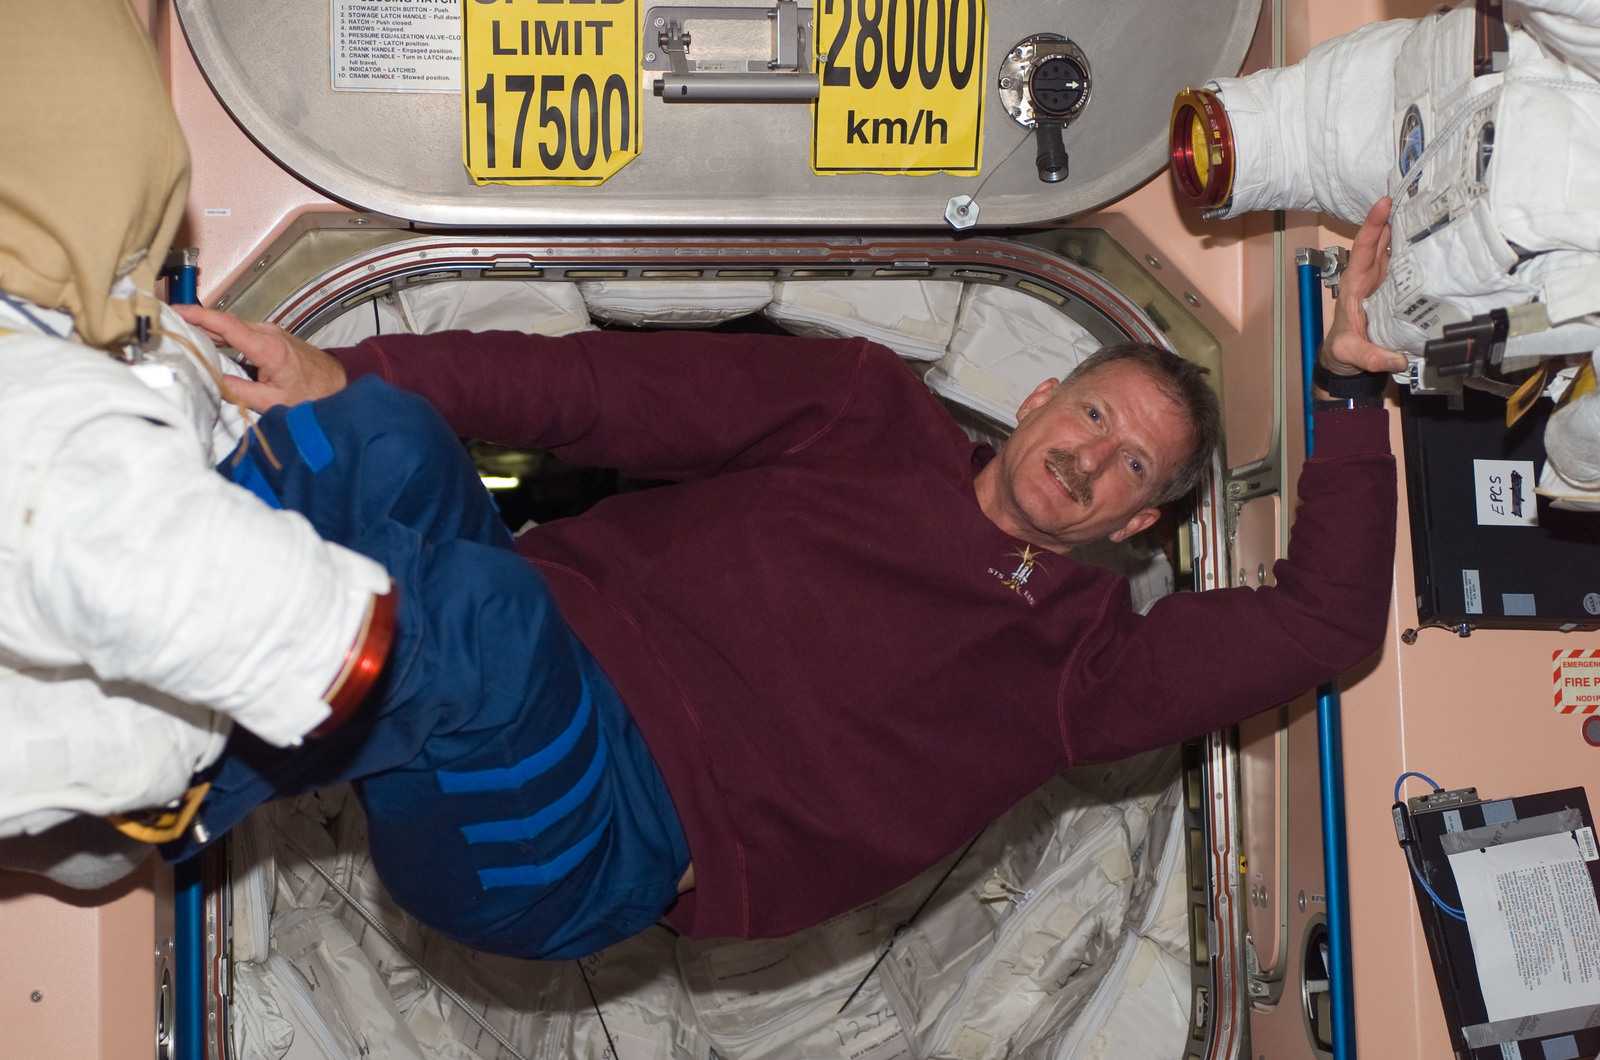 S115E07389 - STS-115 - STS-115 Tanner floats in the Node 1 hatch area during Expedition 13 / STS-115 Joint Operations